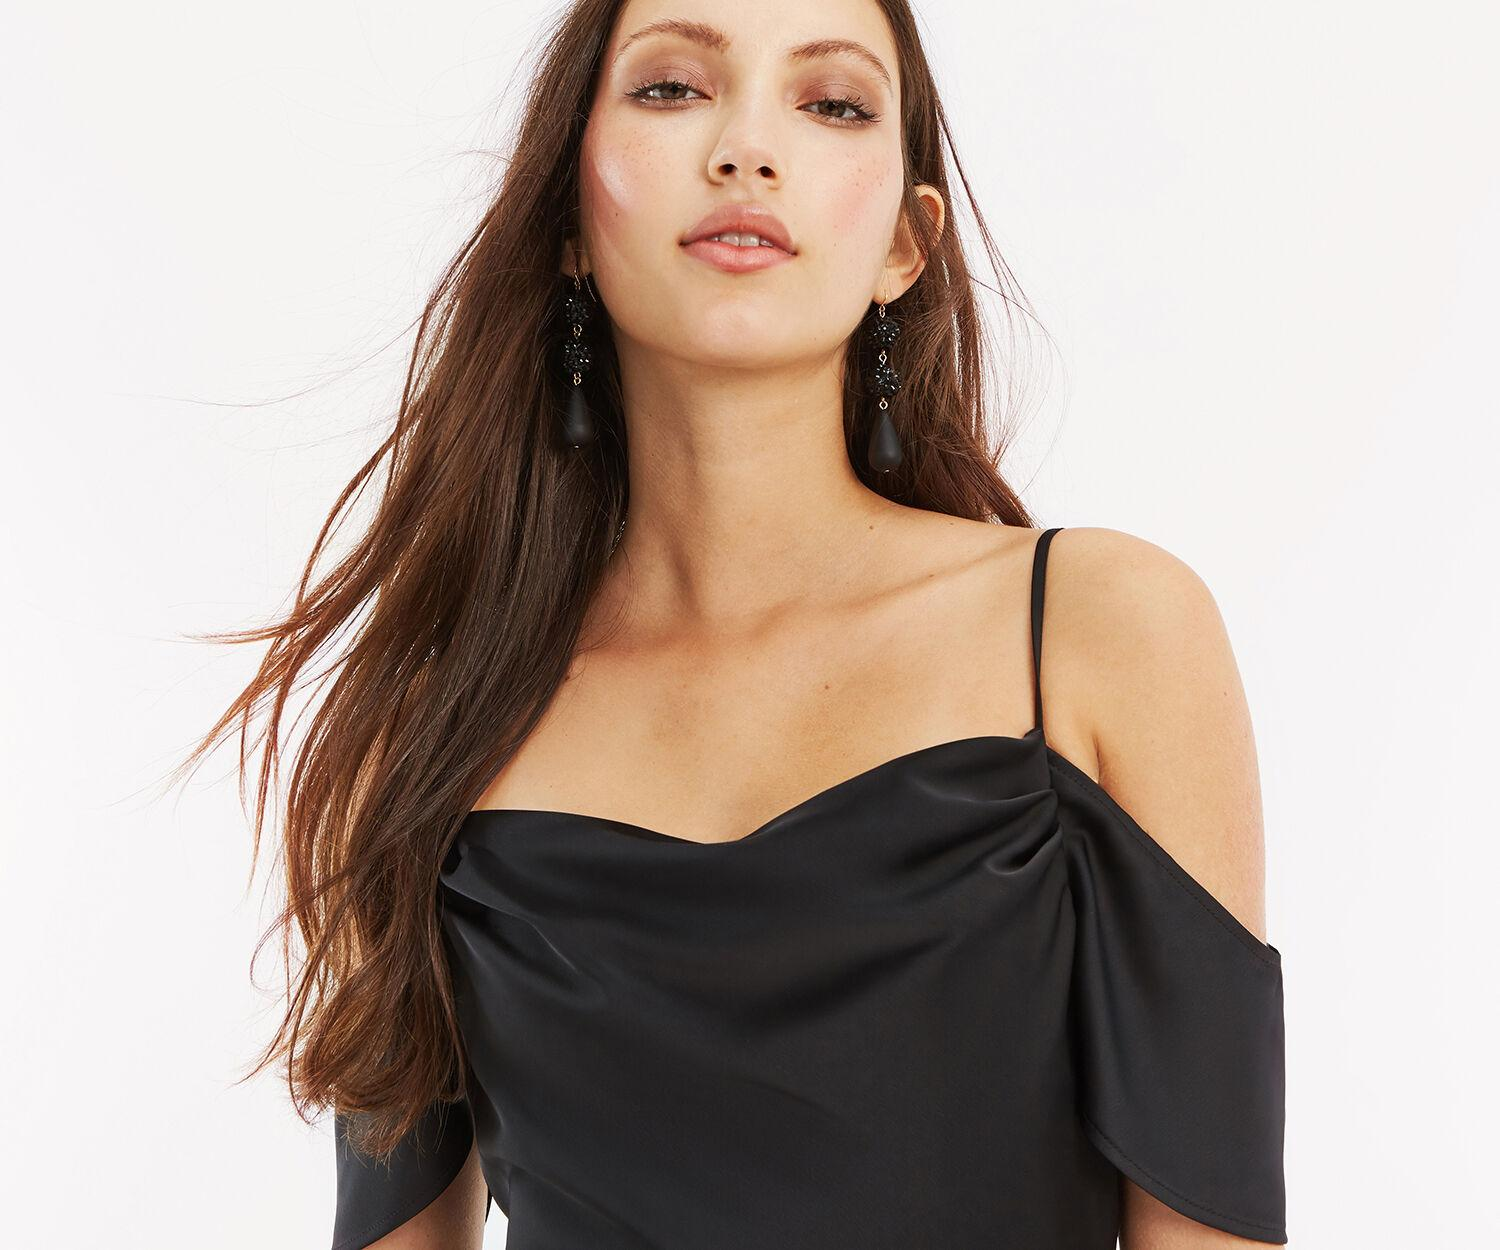 Cowl Neckline Wedding Gowns: Oasis Synthetic Cowl Neck Bridesmaid Dress In Black